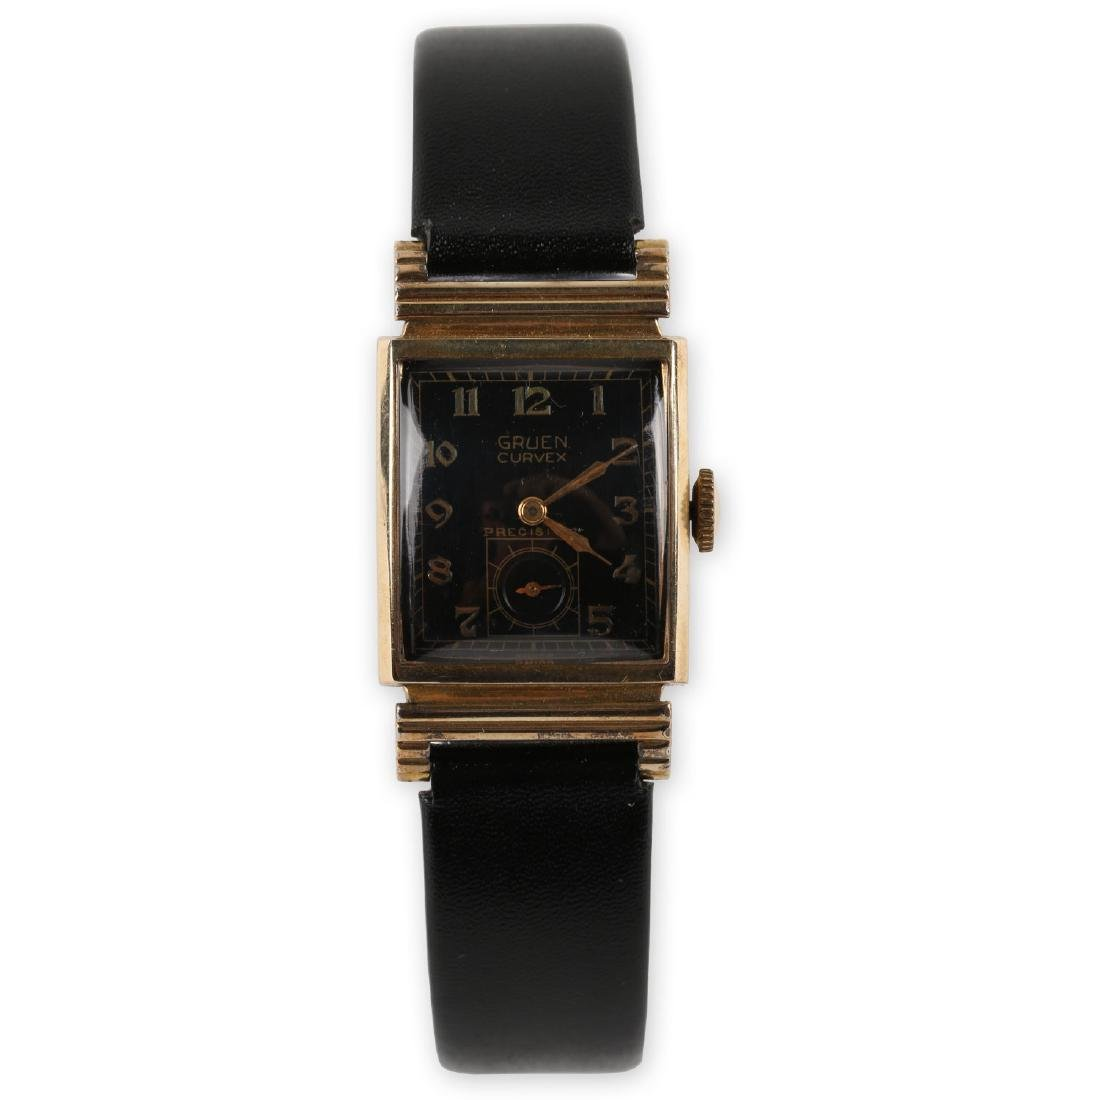 "Gruen ""Curvex"" Precision Dress Wristwatch"